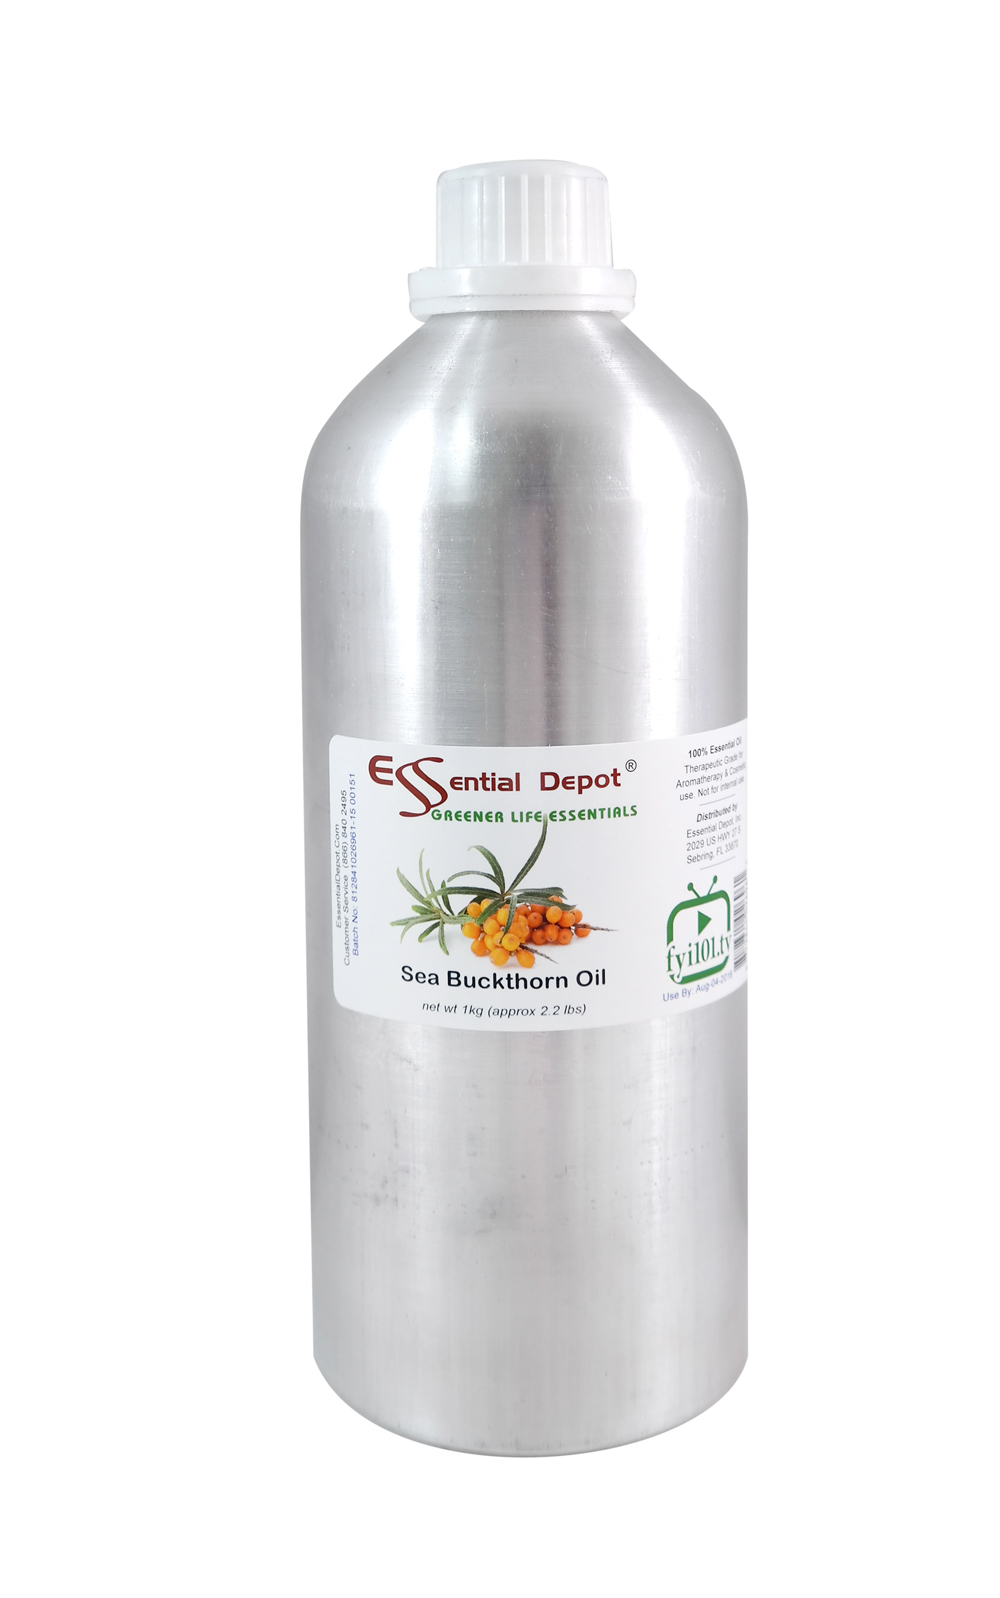 Sea Buckthorn Oil - 1 KG - Approx 2.2 lbs. - FREE US SHIPPING